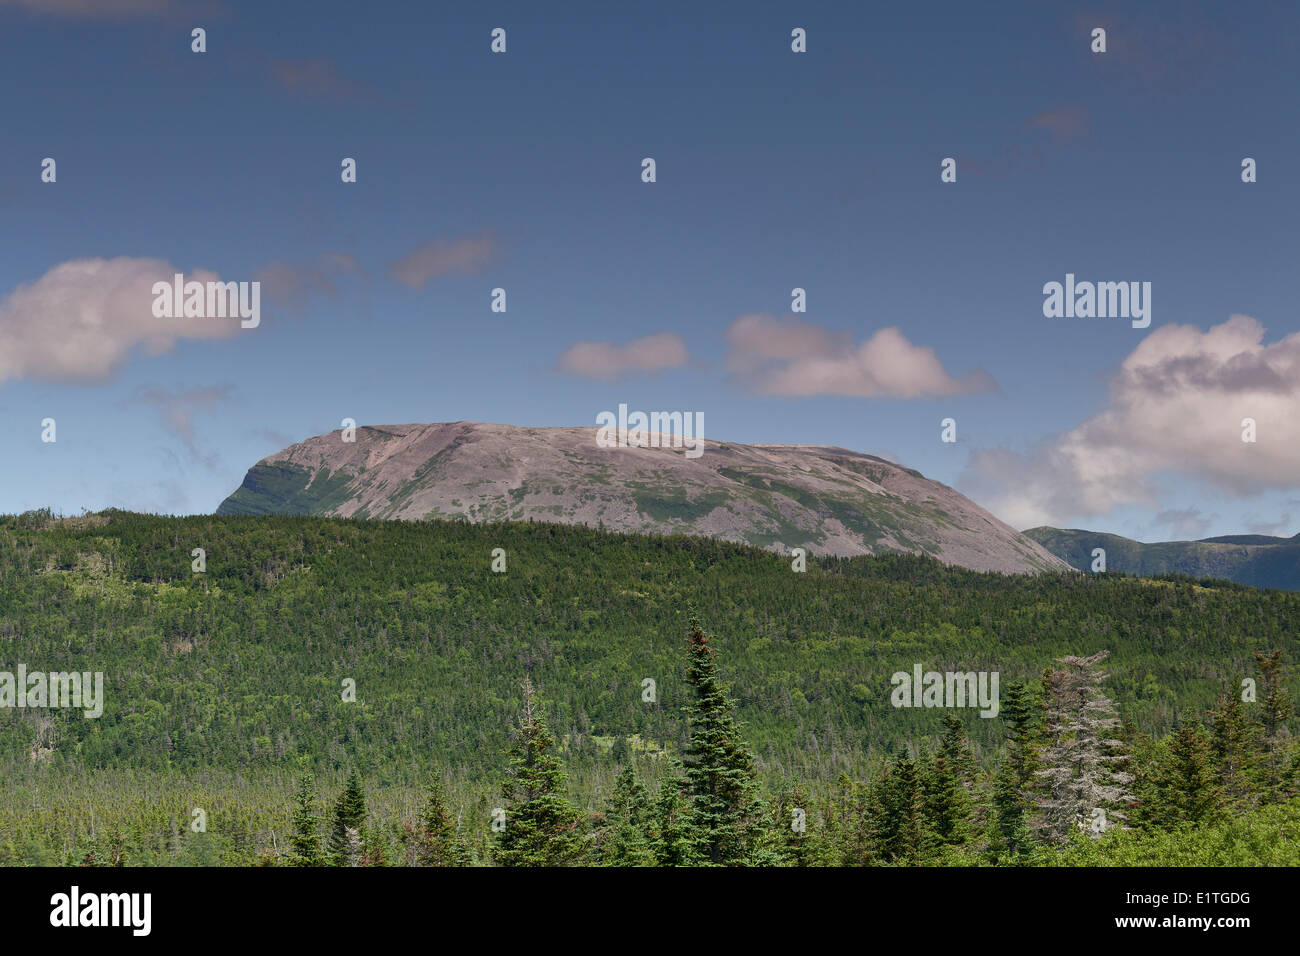 Gros Morne - the lonely looking bare mountain that gave Gros Morne National Park on Newfoundland, NL, Canada its name - Stock Image